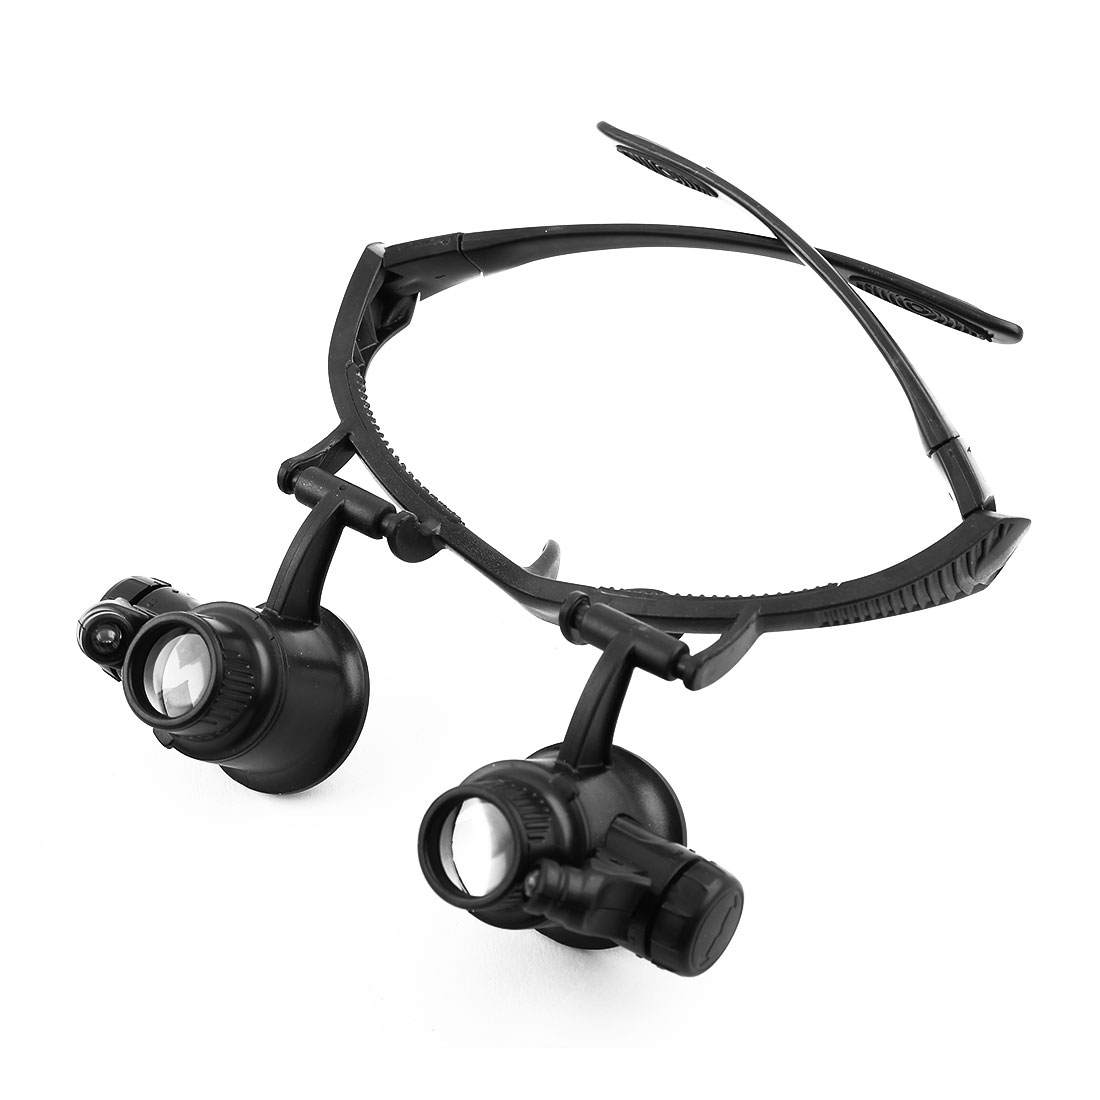 Patent Authorized Jewelry Watch Repair LED Lighted Headwear 10X 15X 20X 25X Loupe Magnifier Magnifying